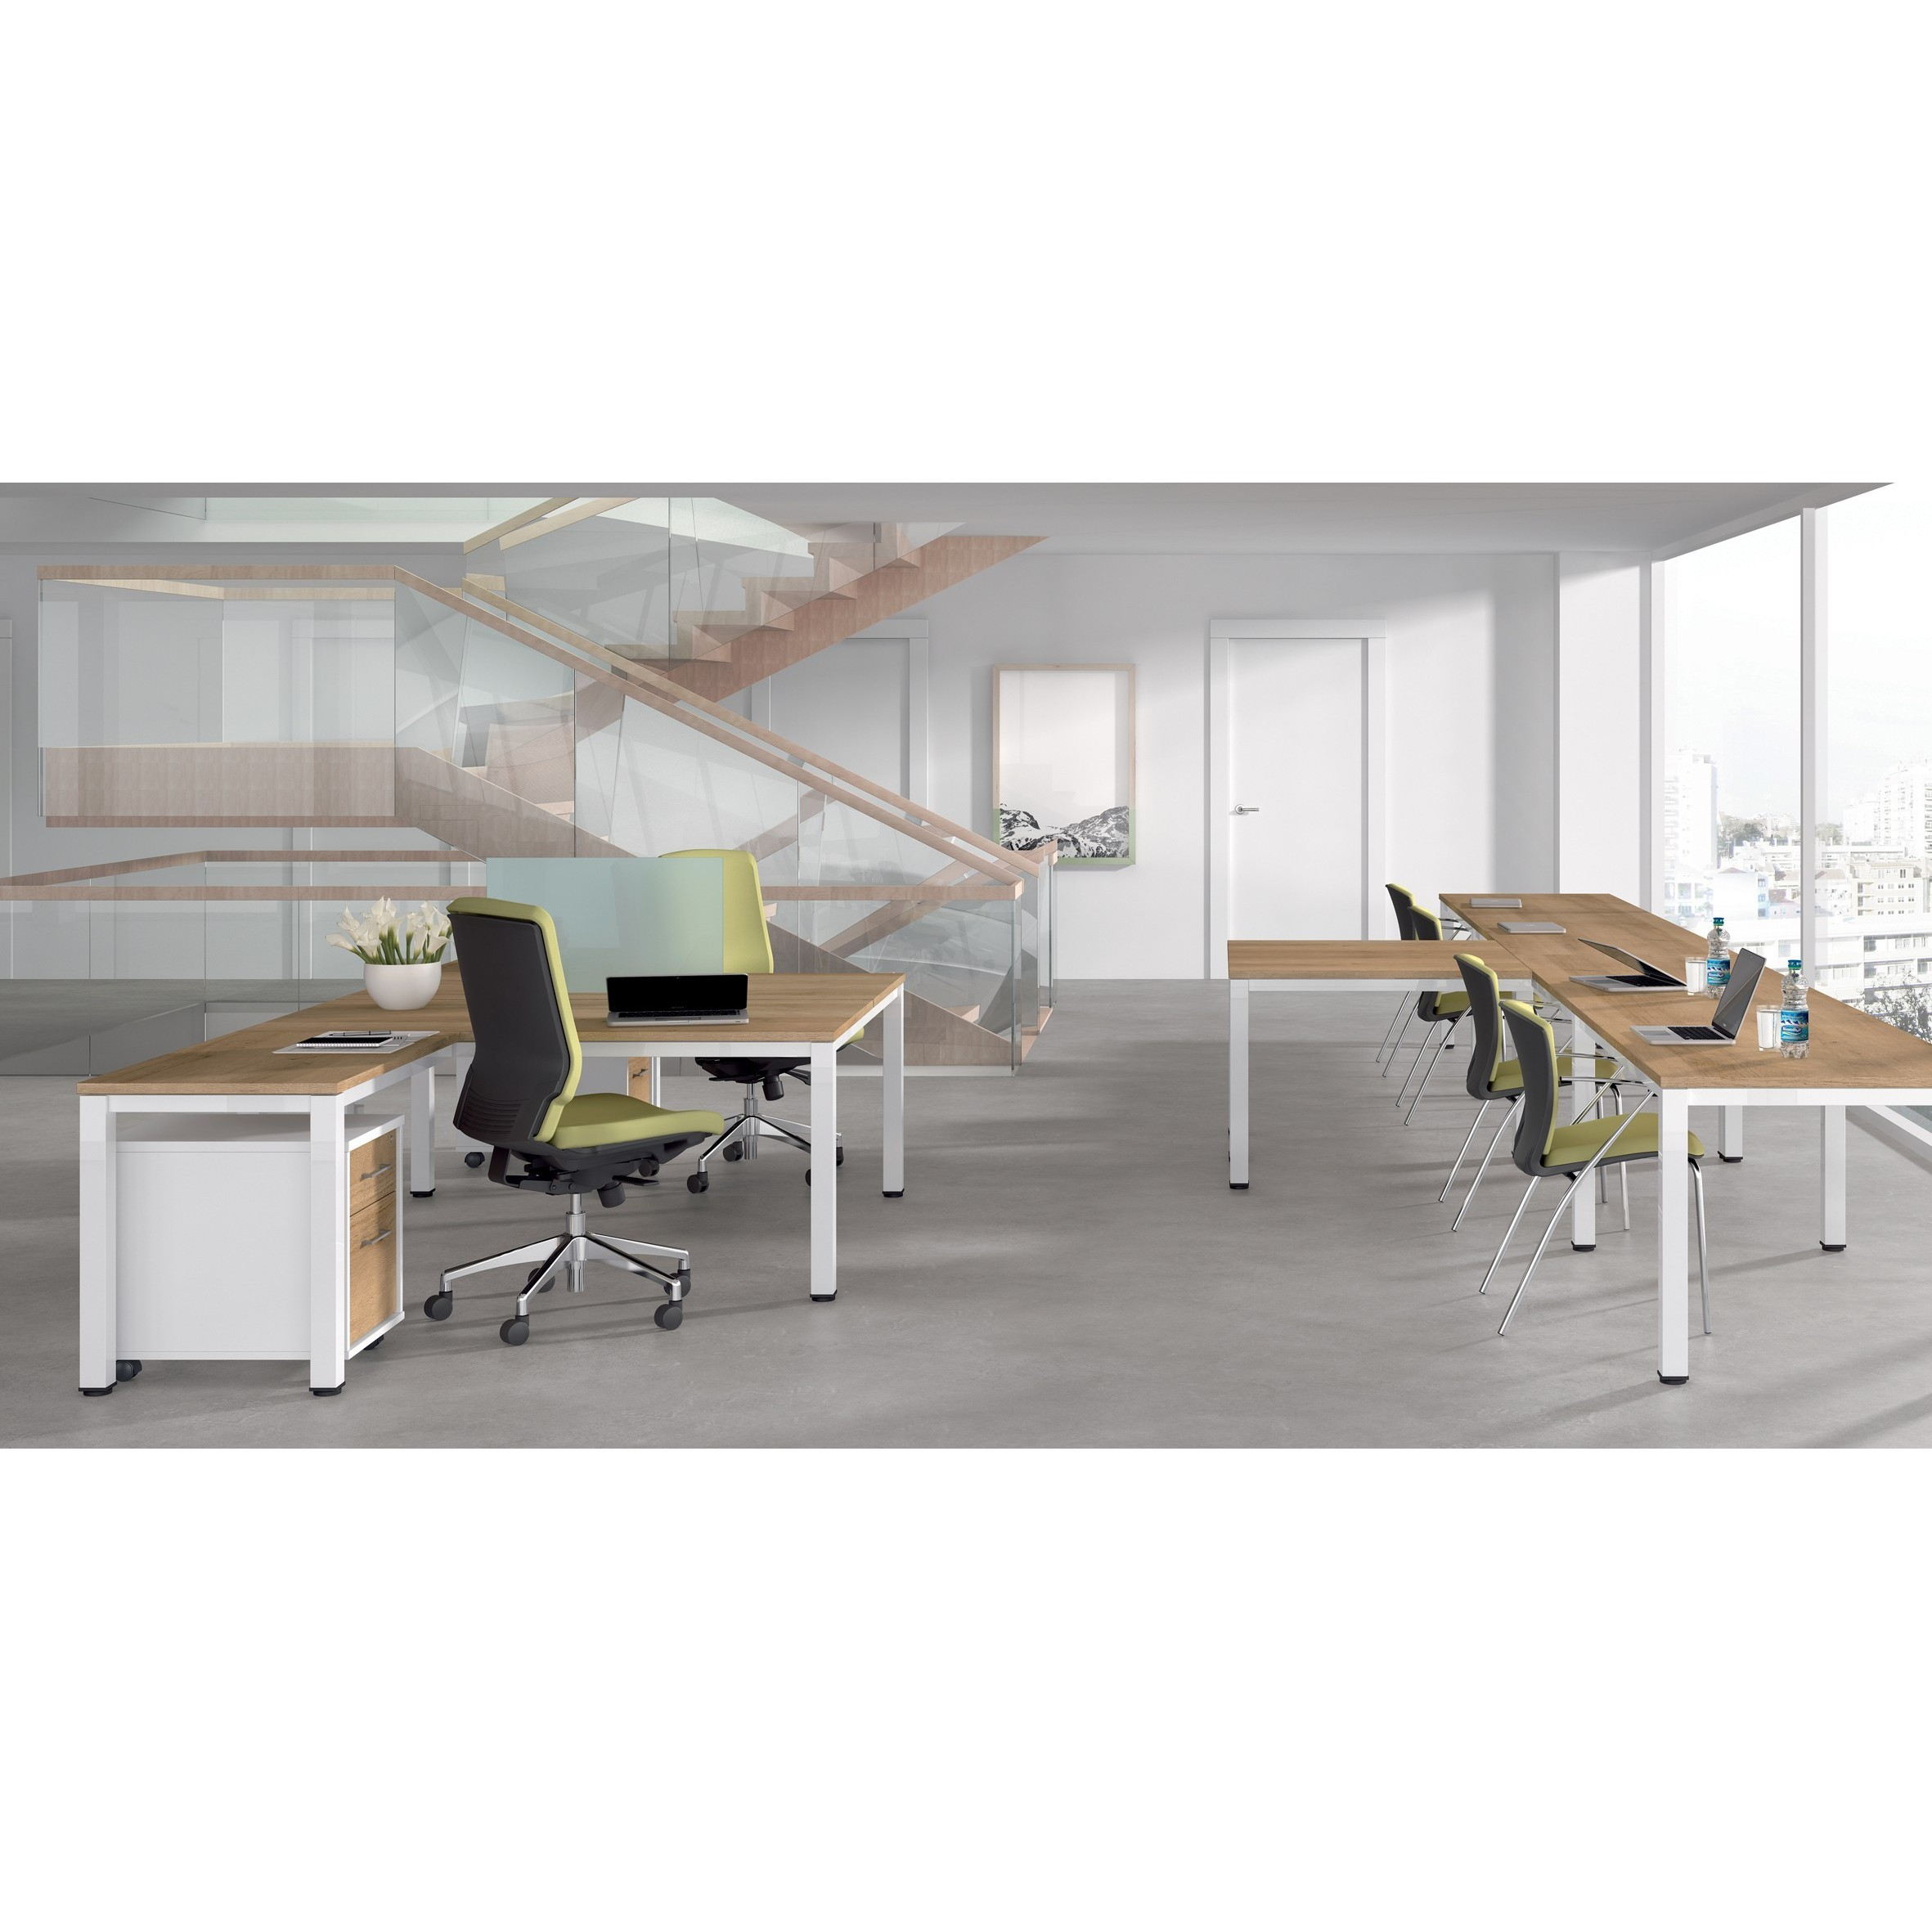 TABLE OFFICE 'S EXECUTIVE SERIES 180X80 WHITE/GREY